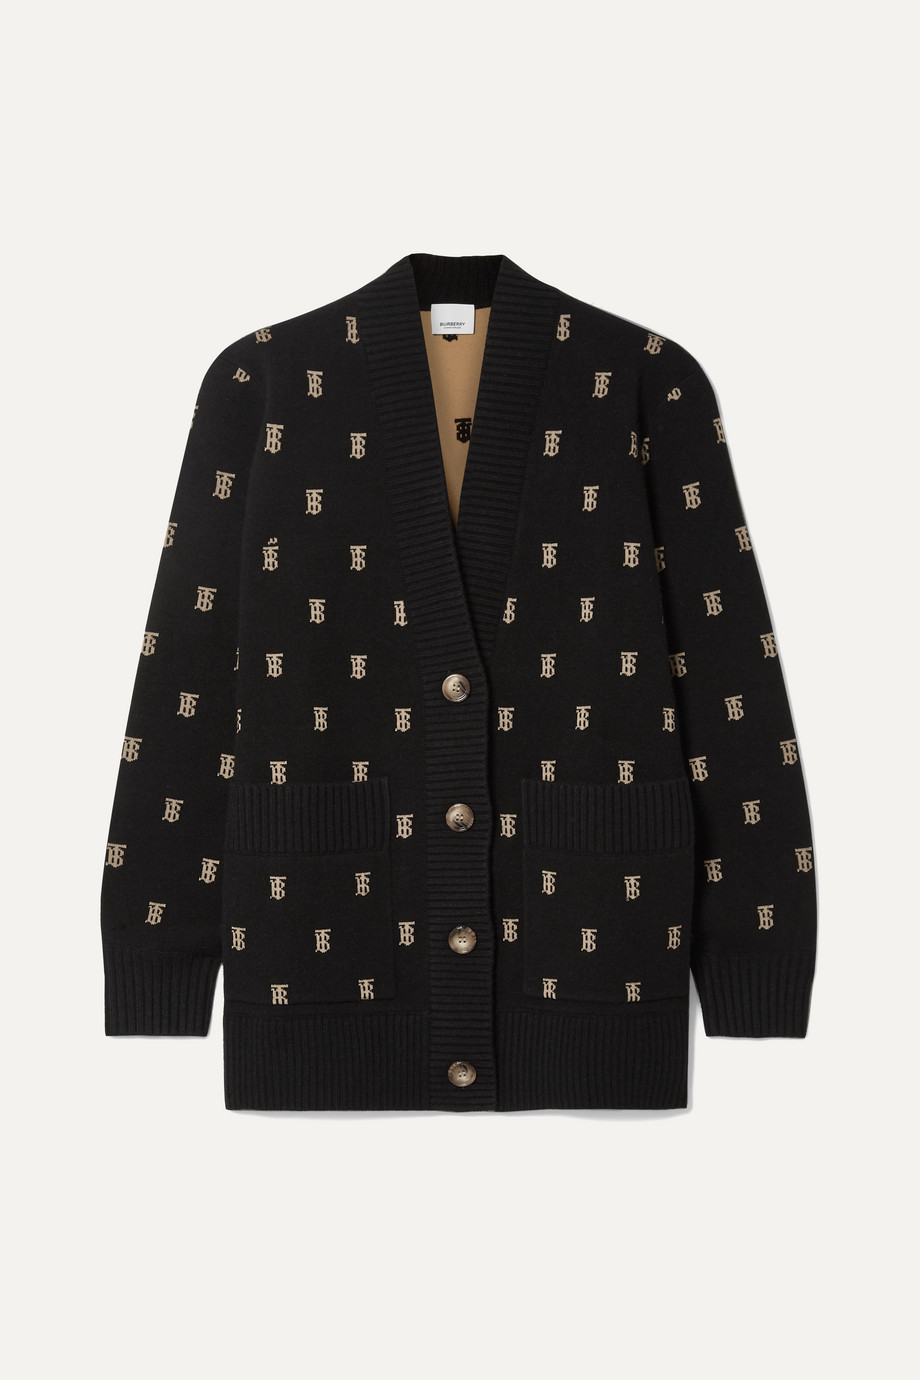 Burberry Intarsia-knit cardigan